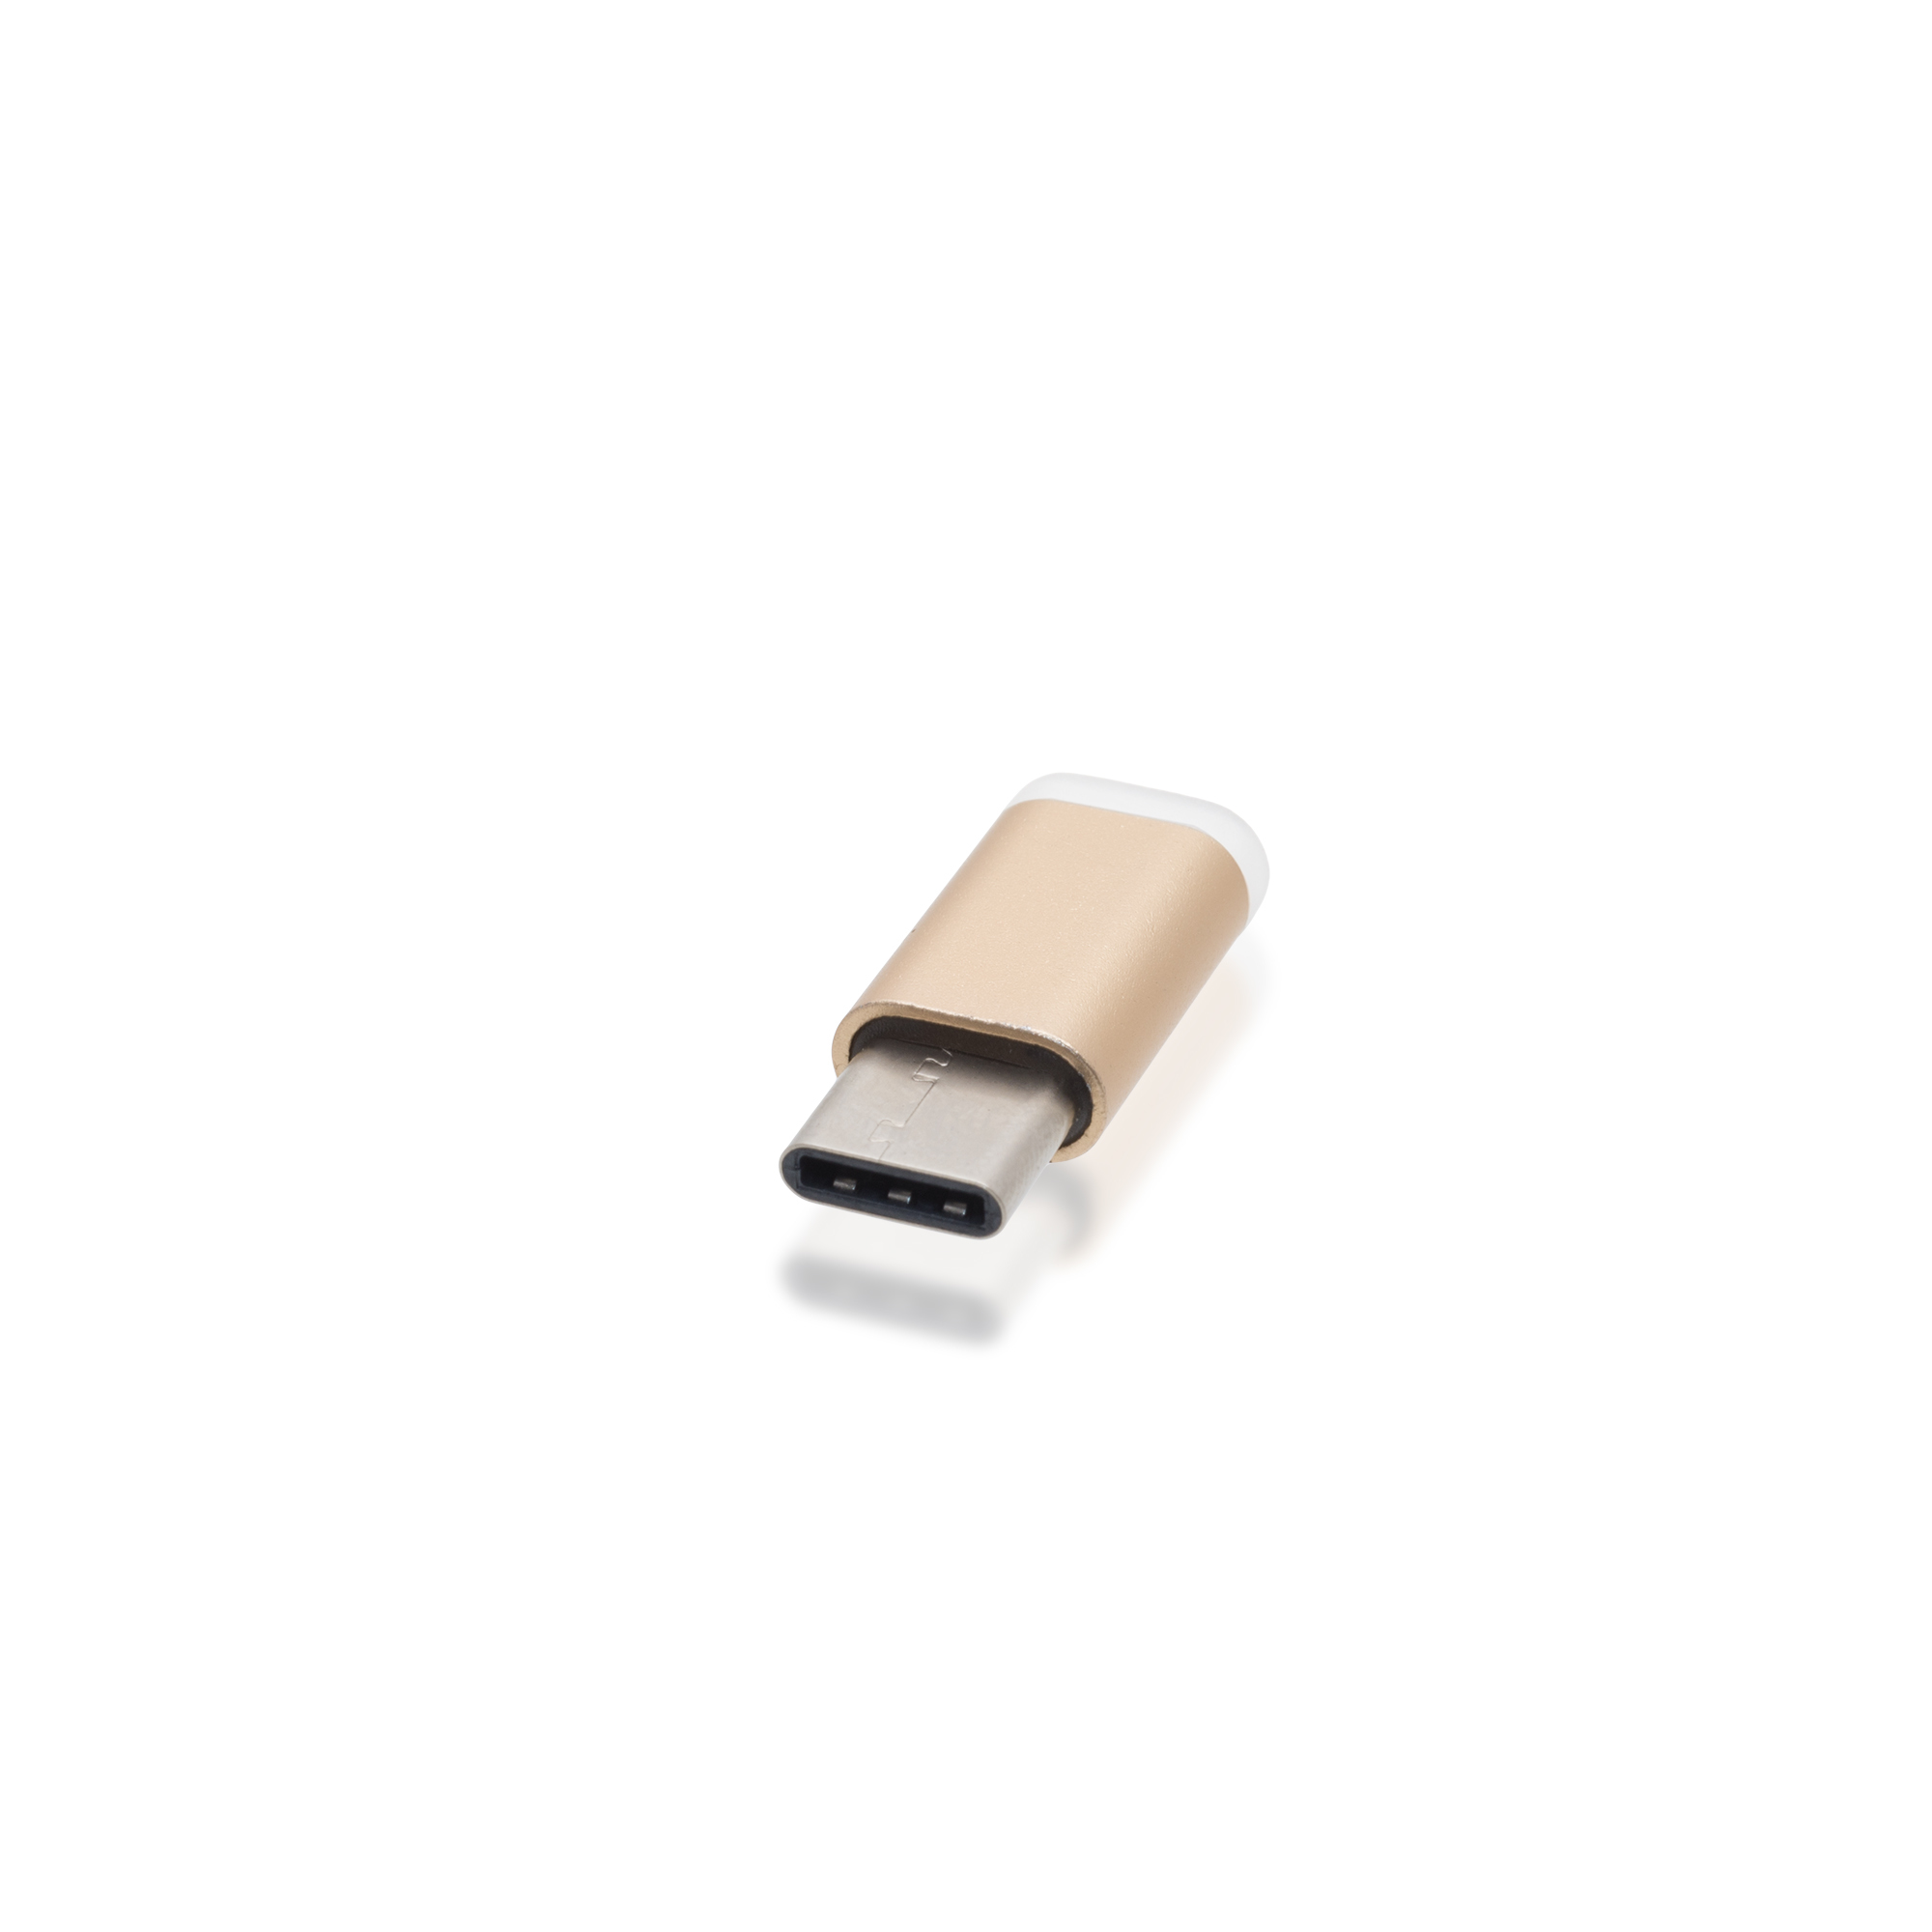 Адаптер Brosco micro USB - Type-C, золотой